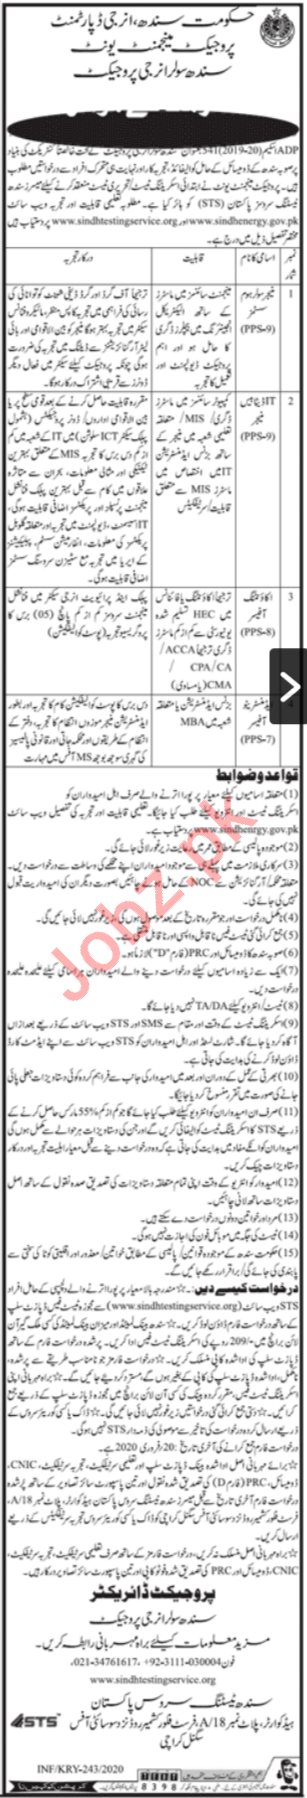 Energy Department Sindh Management Jobs 2020 via STS Sindh